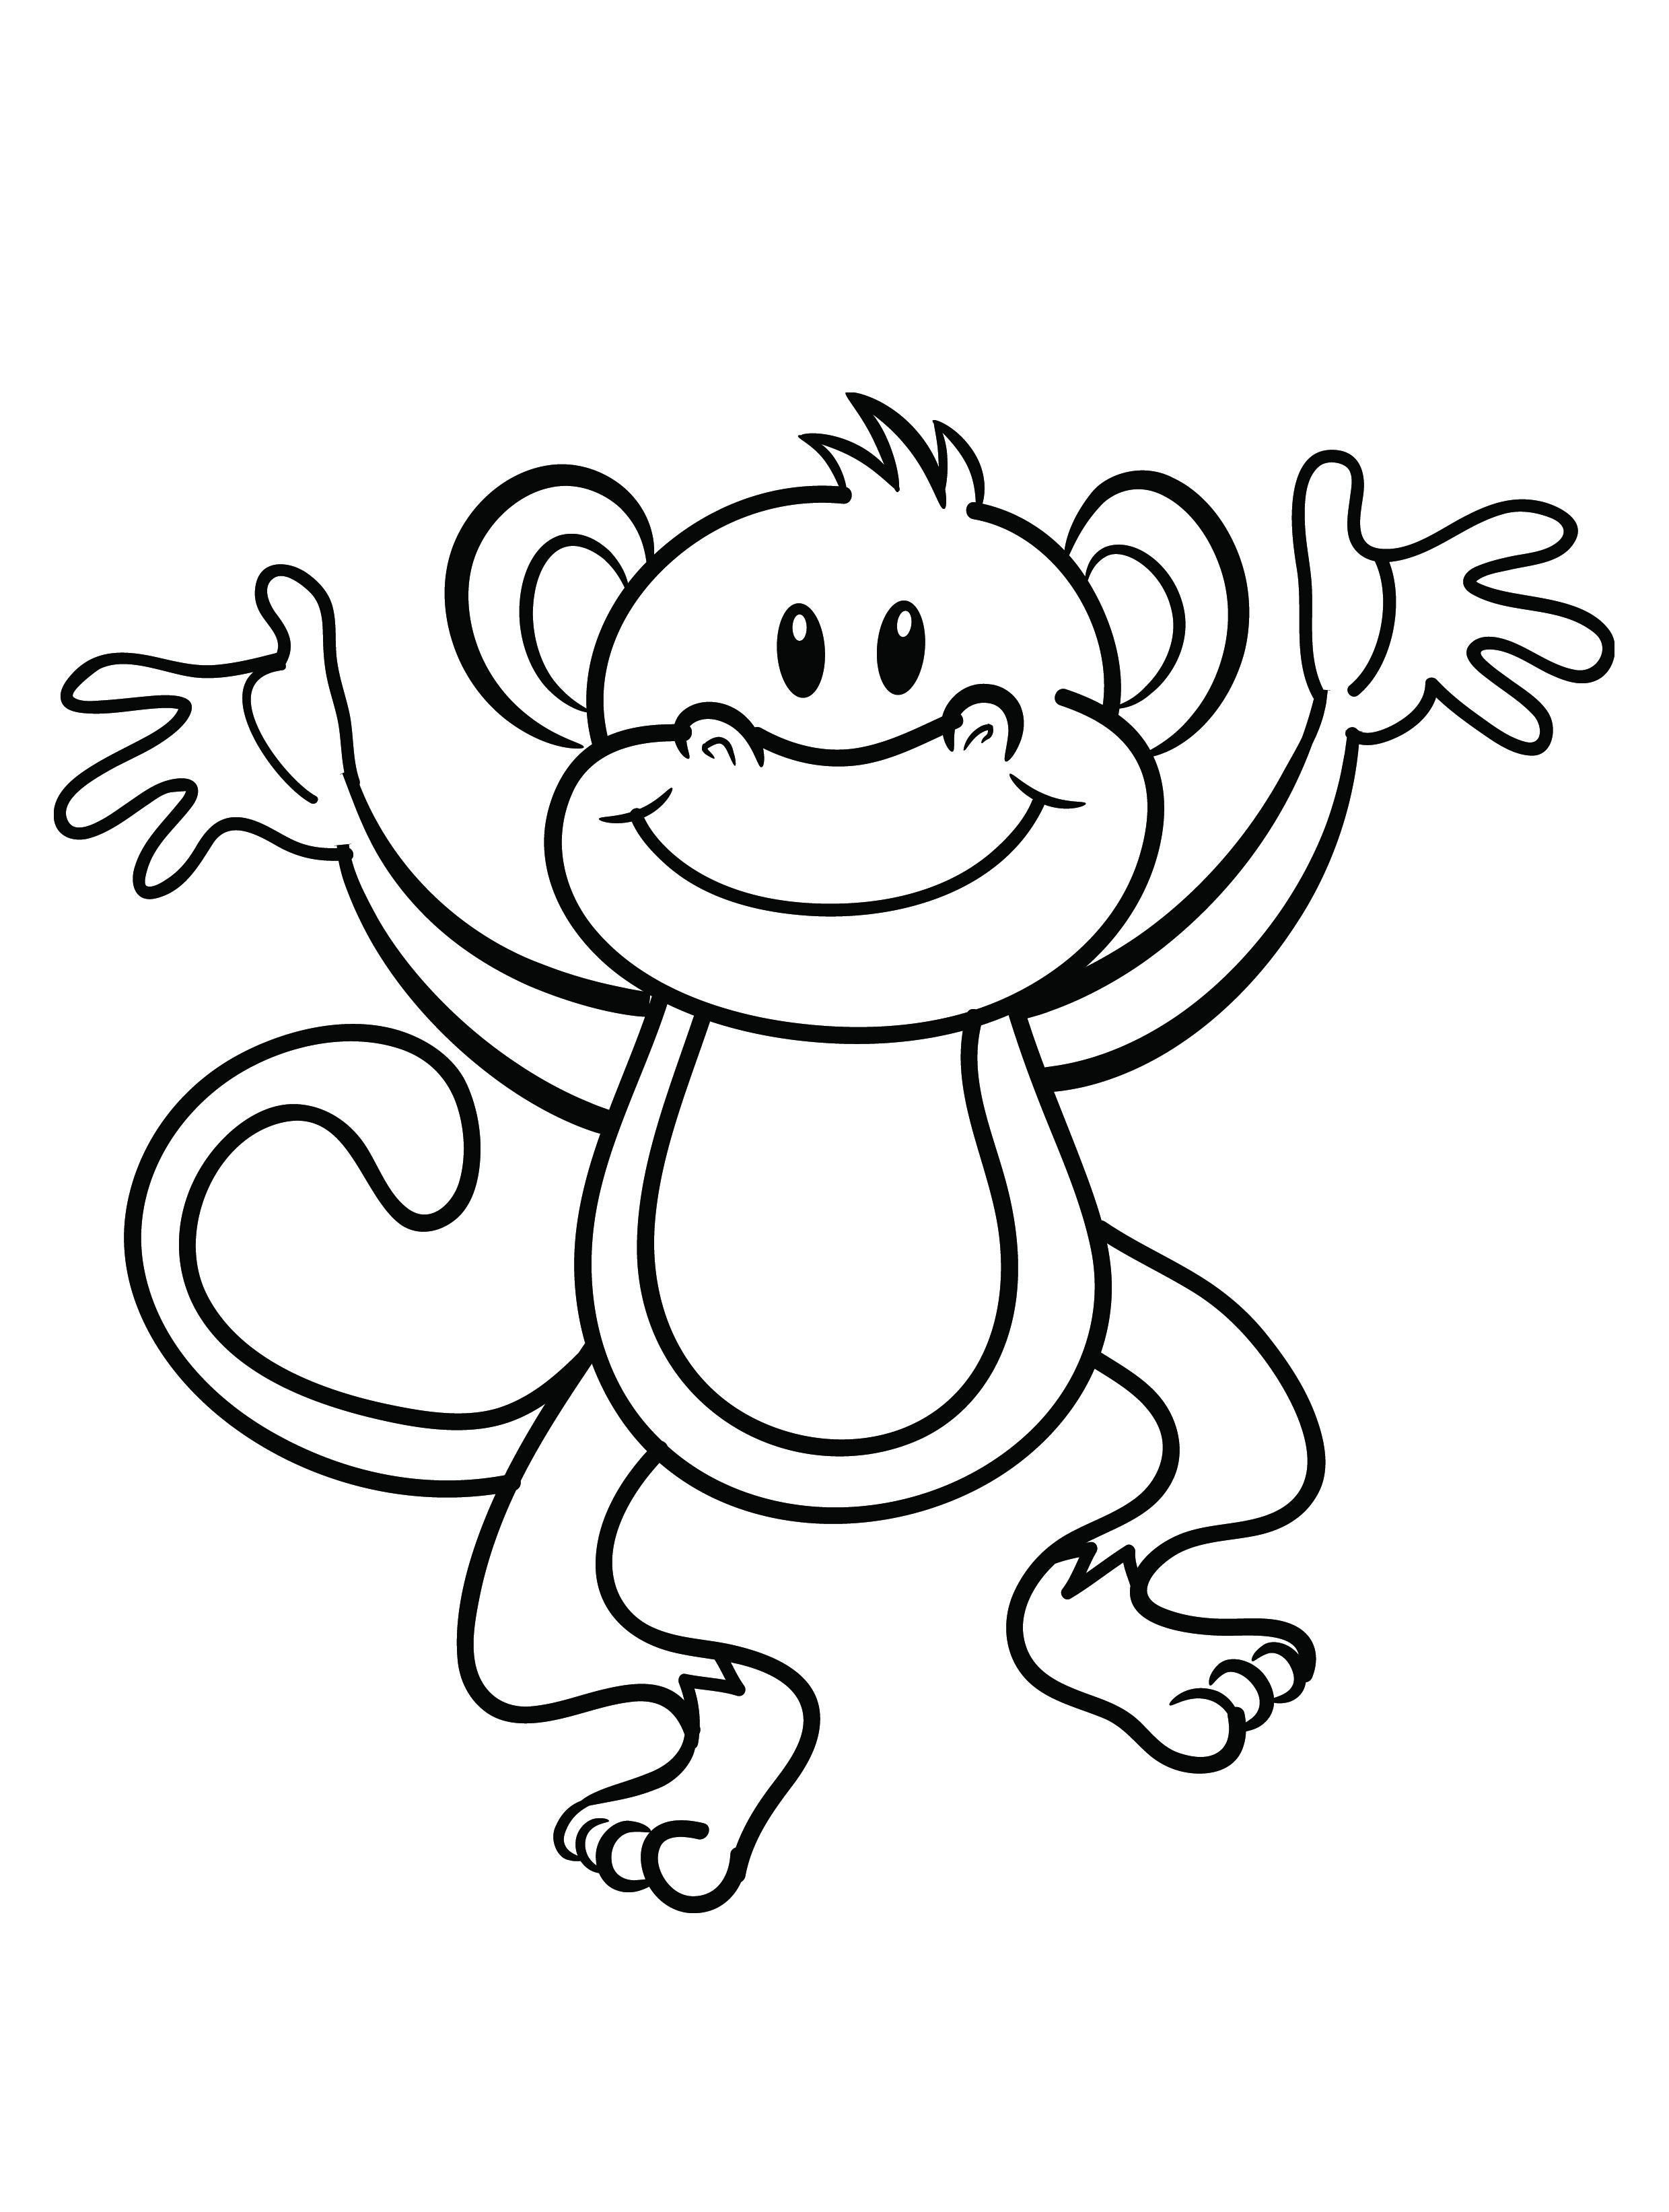 Monkey Coloring Pages for Kids | Coloring Pages | Pinterest